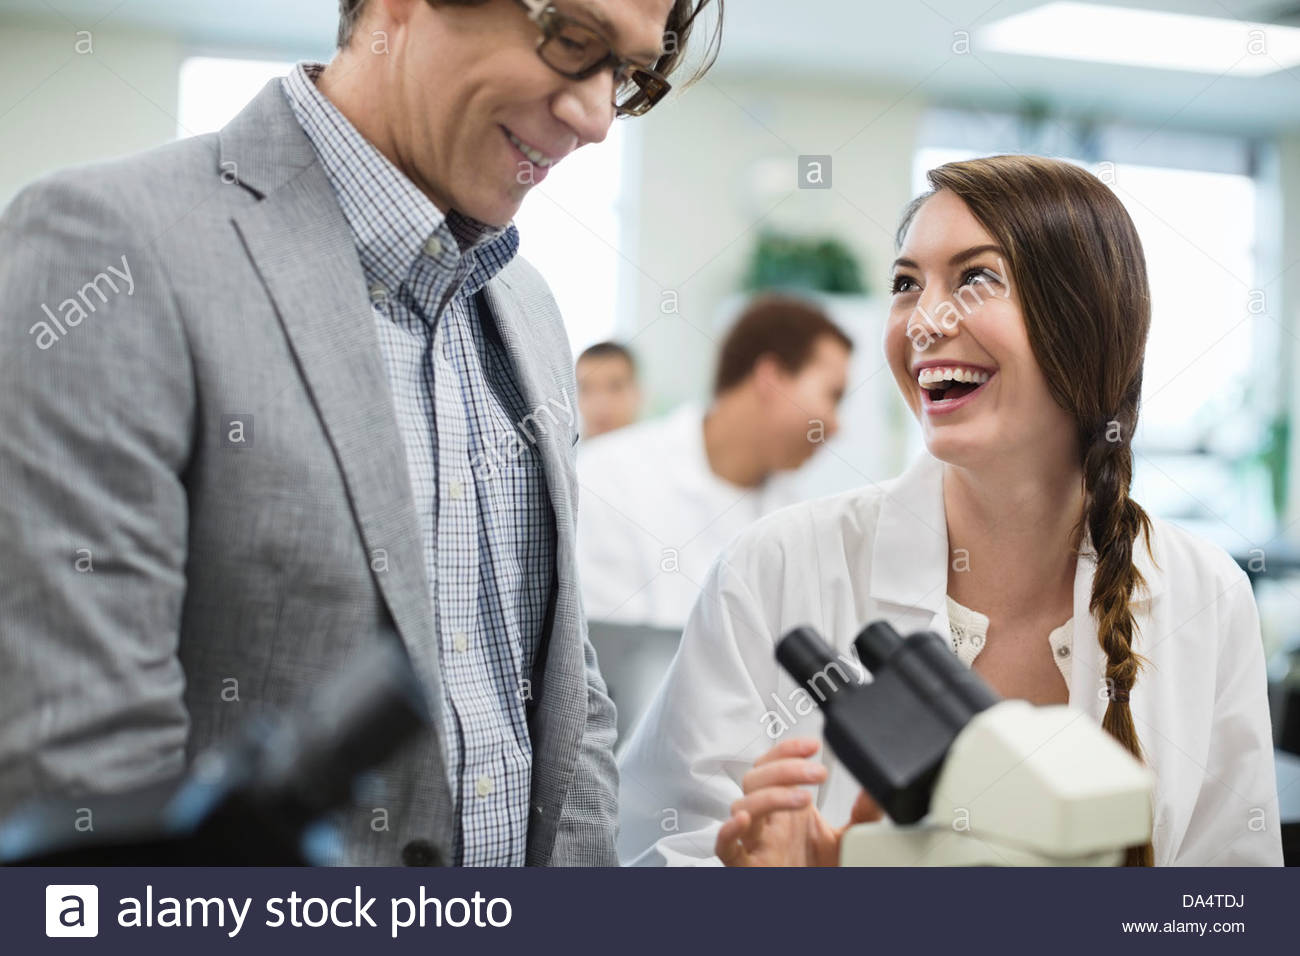 Female student looking at professor in college science lab - Stock Image